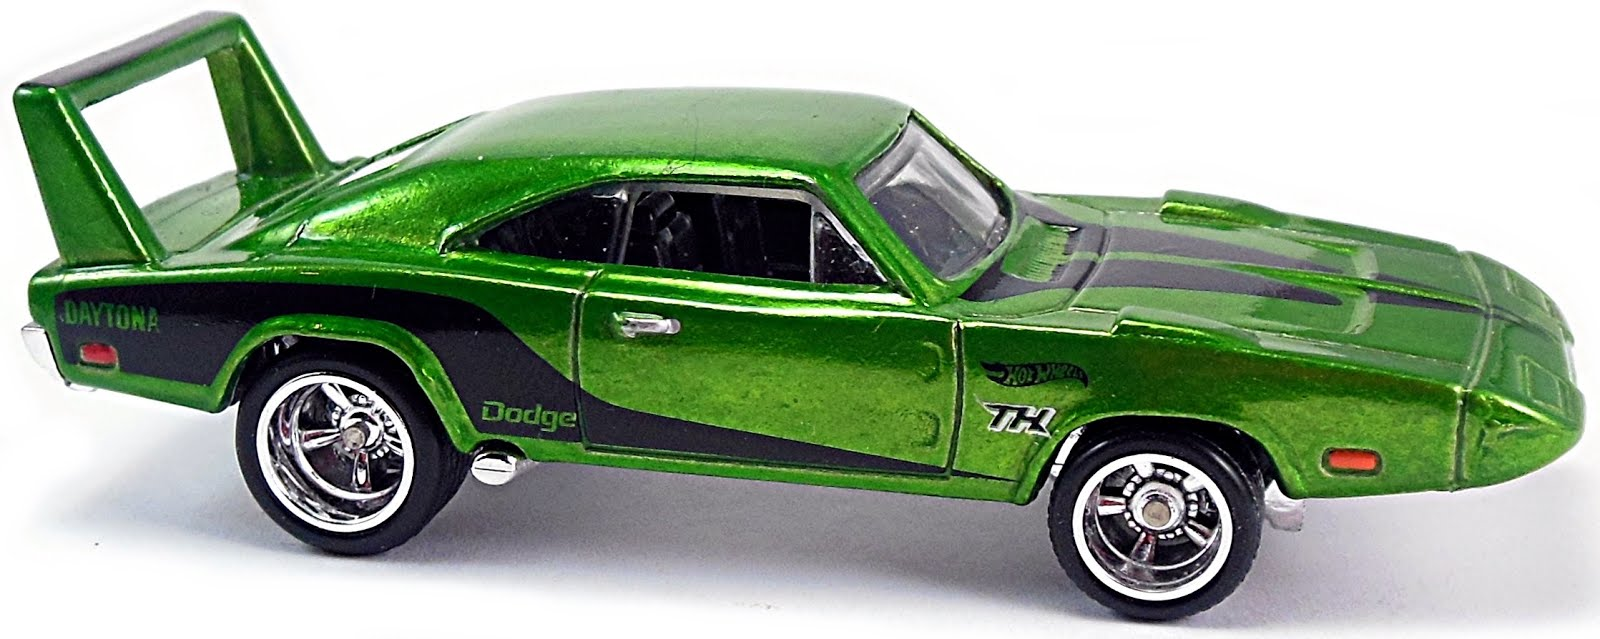 hot wheels dodge charger daytona super treasure hunts